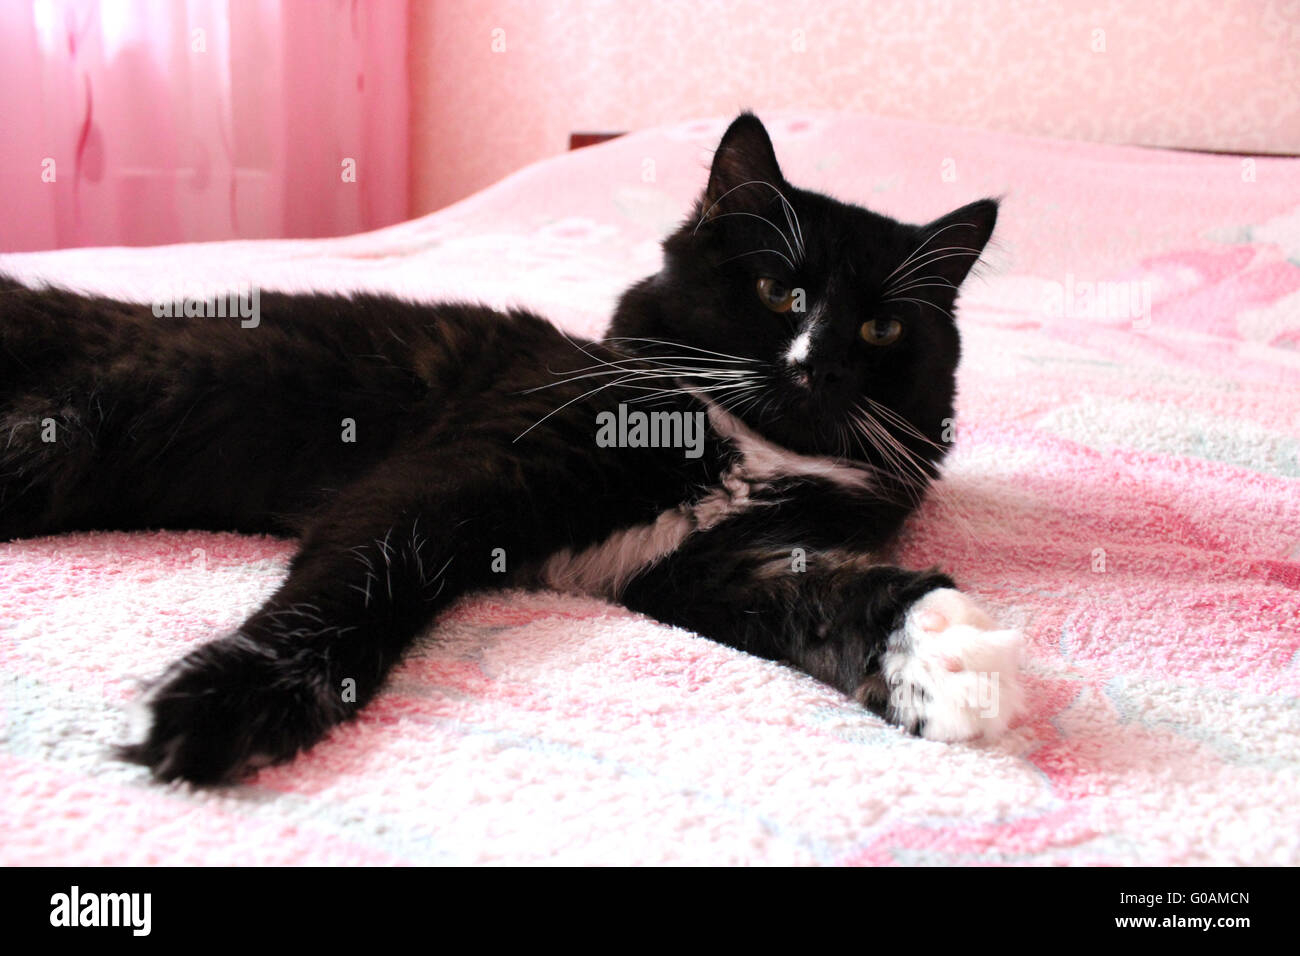 black cat lying prone on the pink matrimonial bed - Stock Image